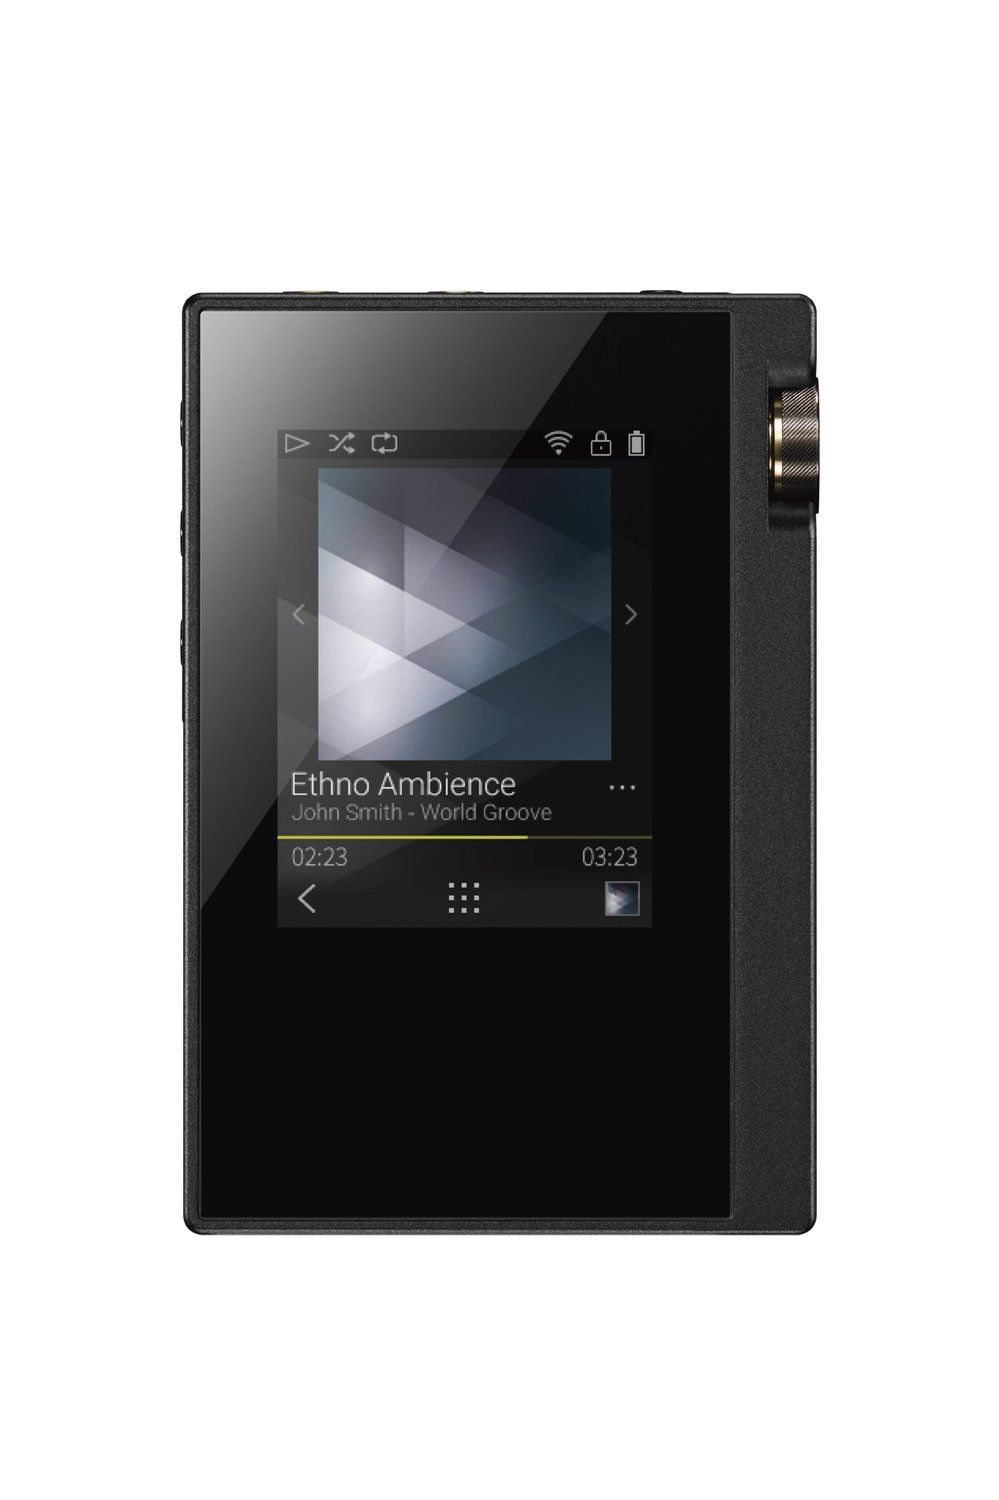 ONKYO DP-S1 16Gb Digital Audio Player Black